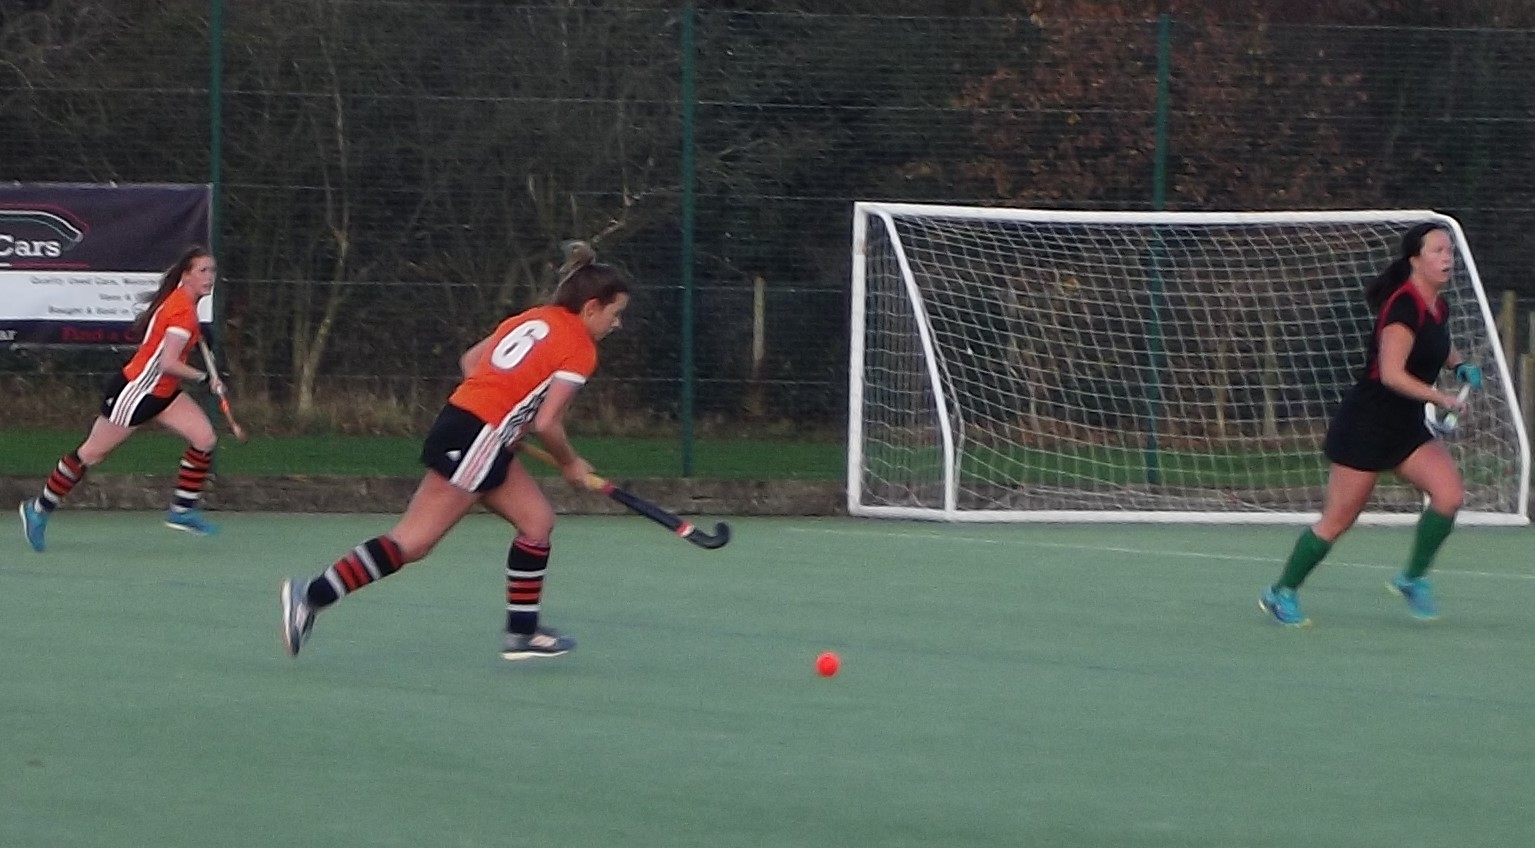 Action from Wilmslow women's firsts' 10-0 victory over Wrexham